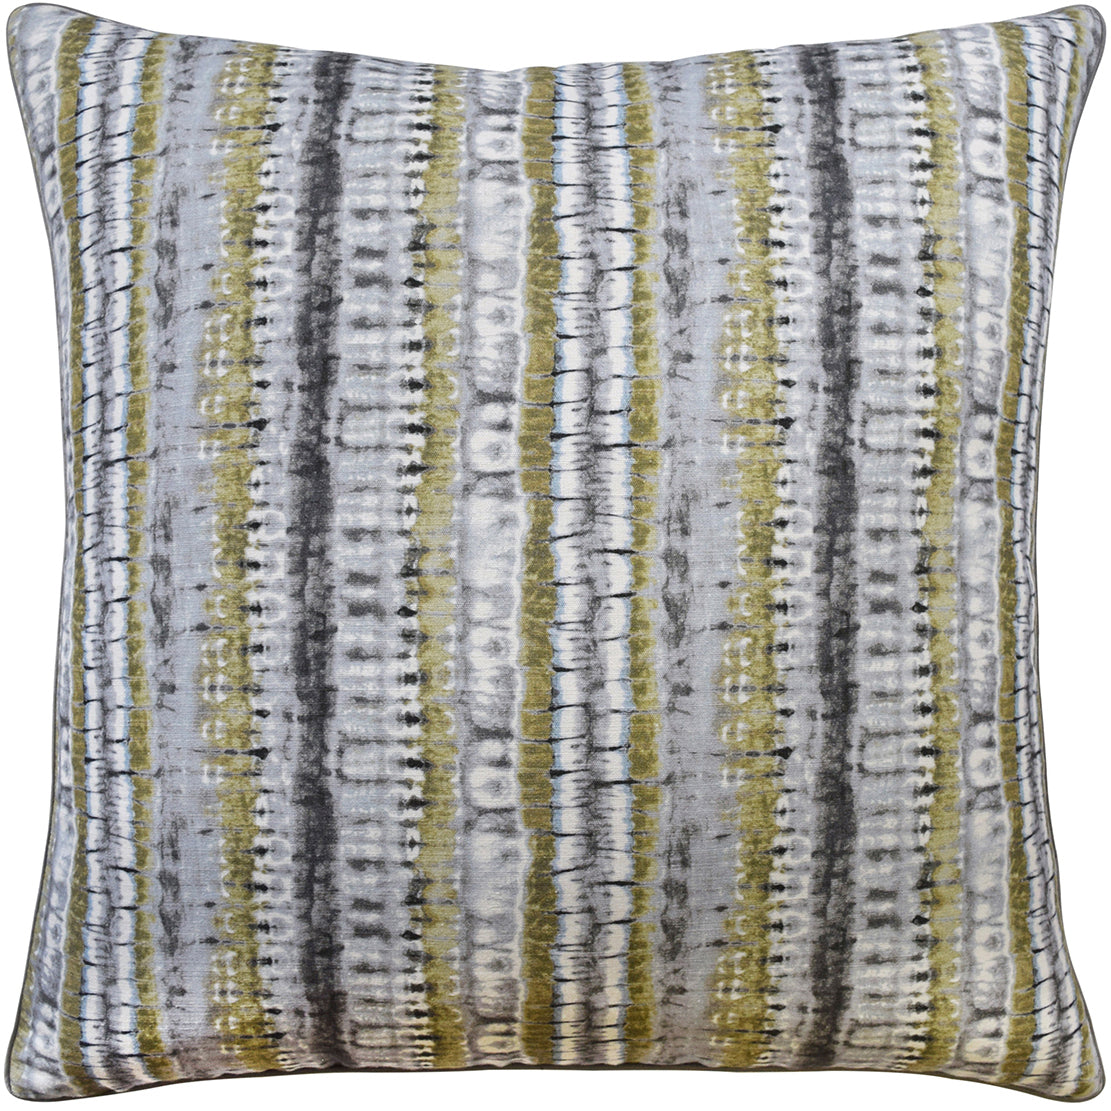 Ryan Studio Pillow in Boho Dove